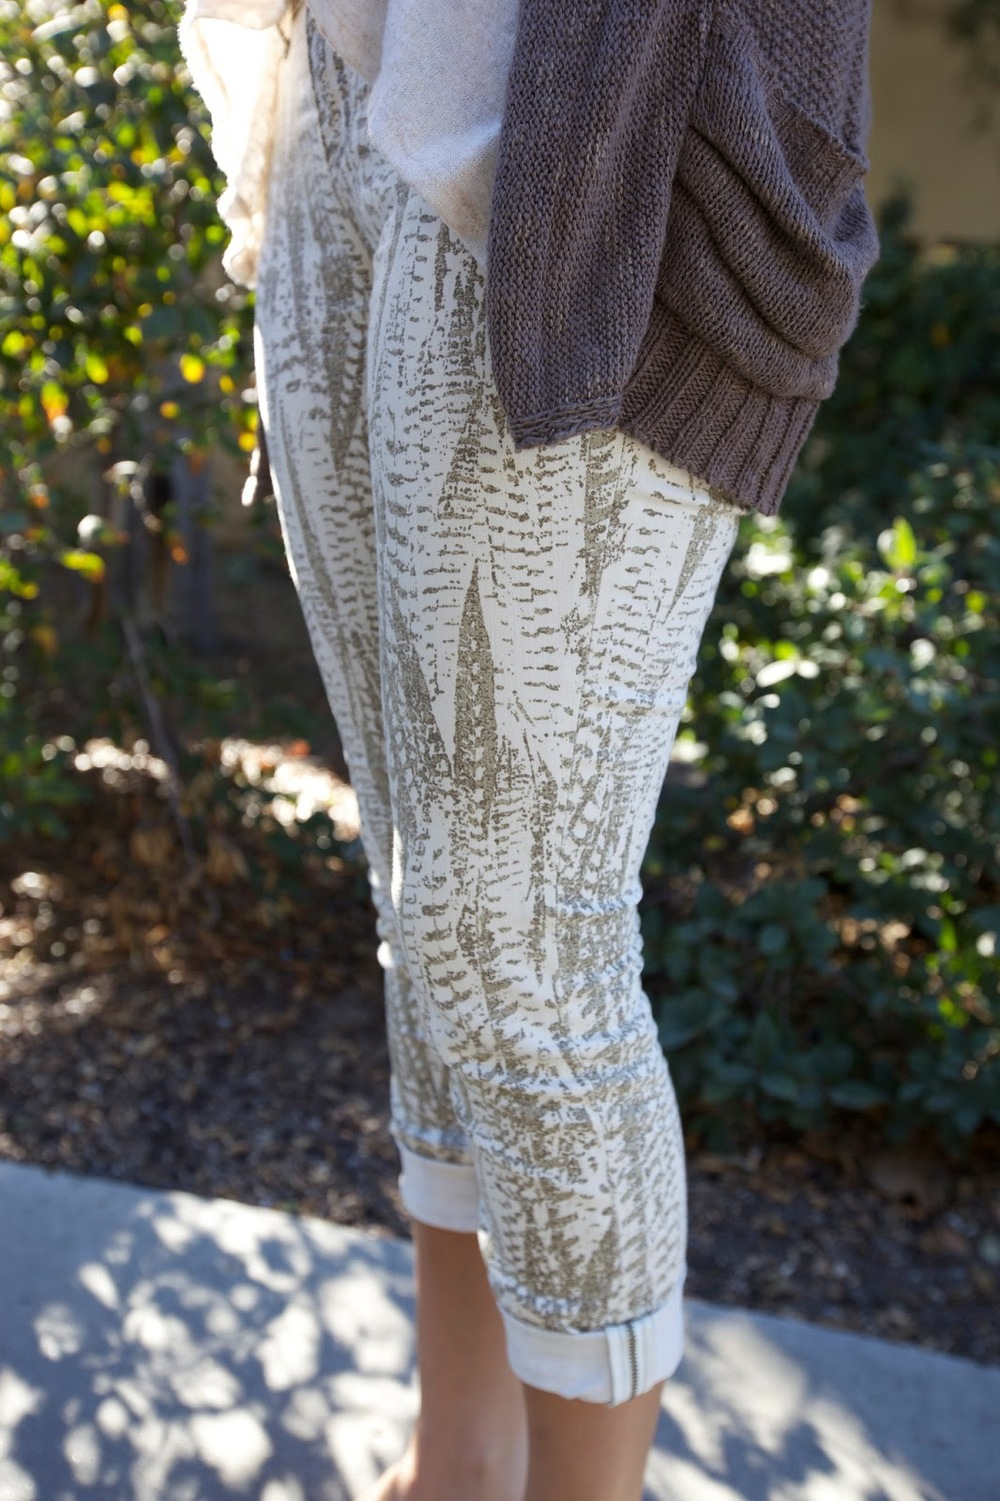 Miruna, a Santa Clara University student wears a stone gray cardigan over a ruffle white scoop top and leaf nature print white and sand leggins